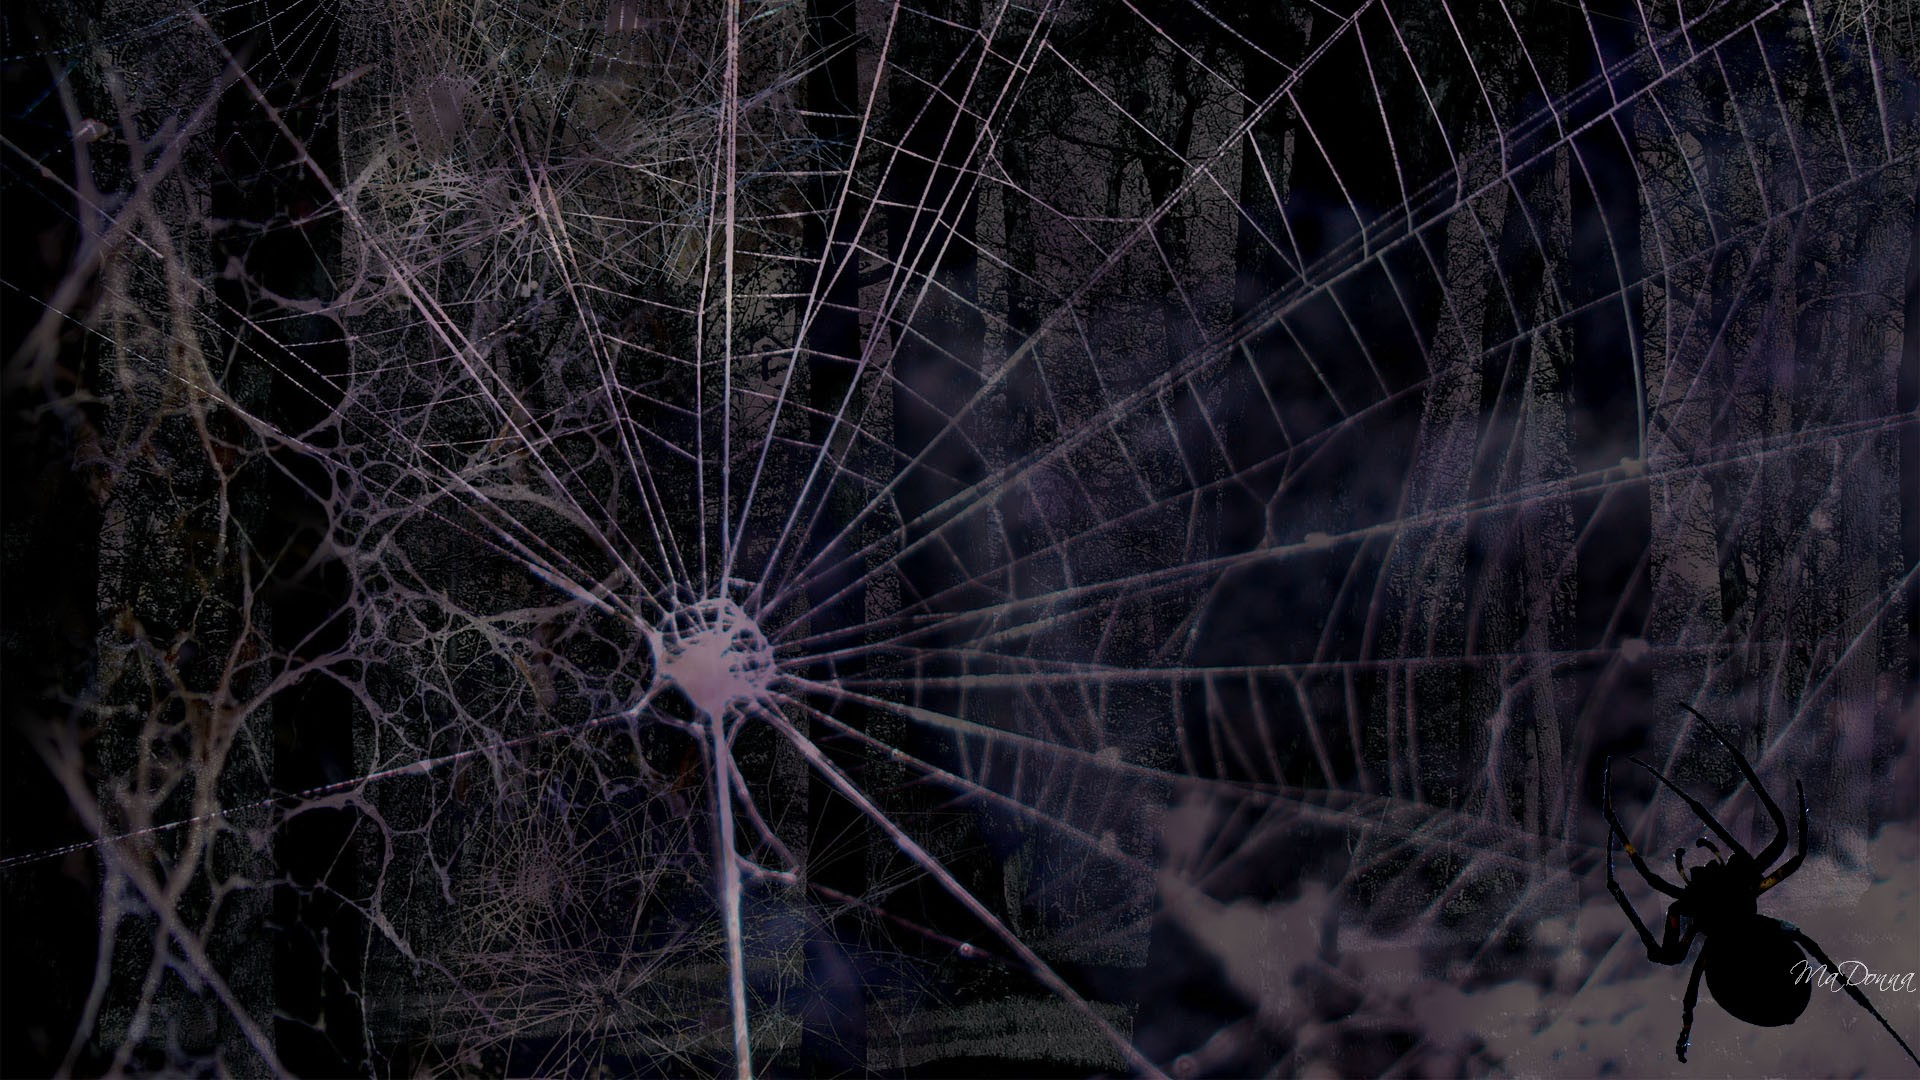 Download Scary Spider HD Desktop Wallpapers We select the best 1920x1080